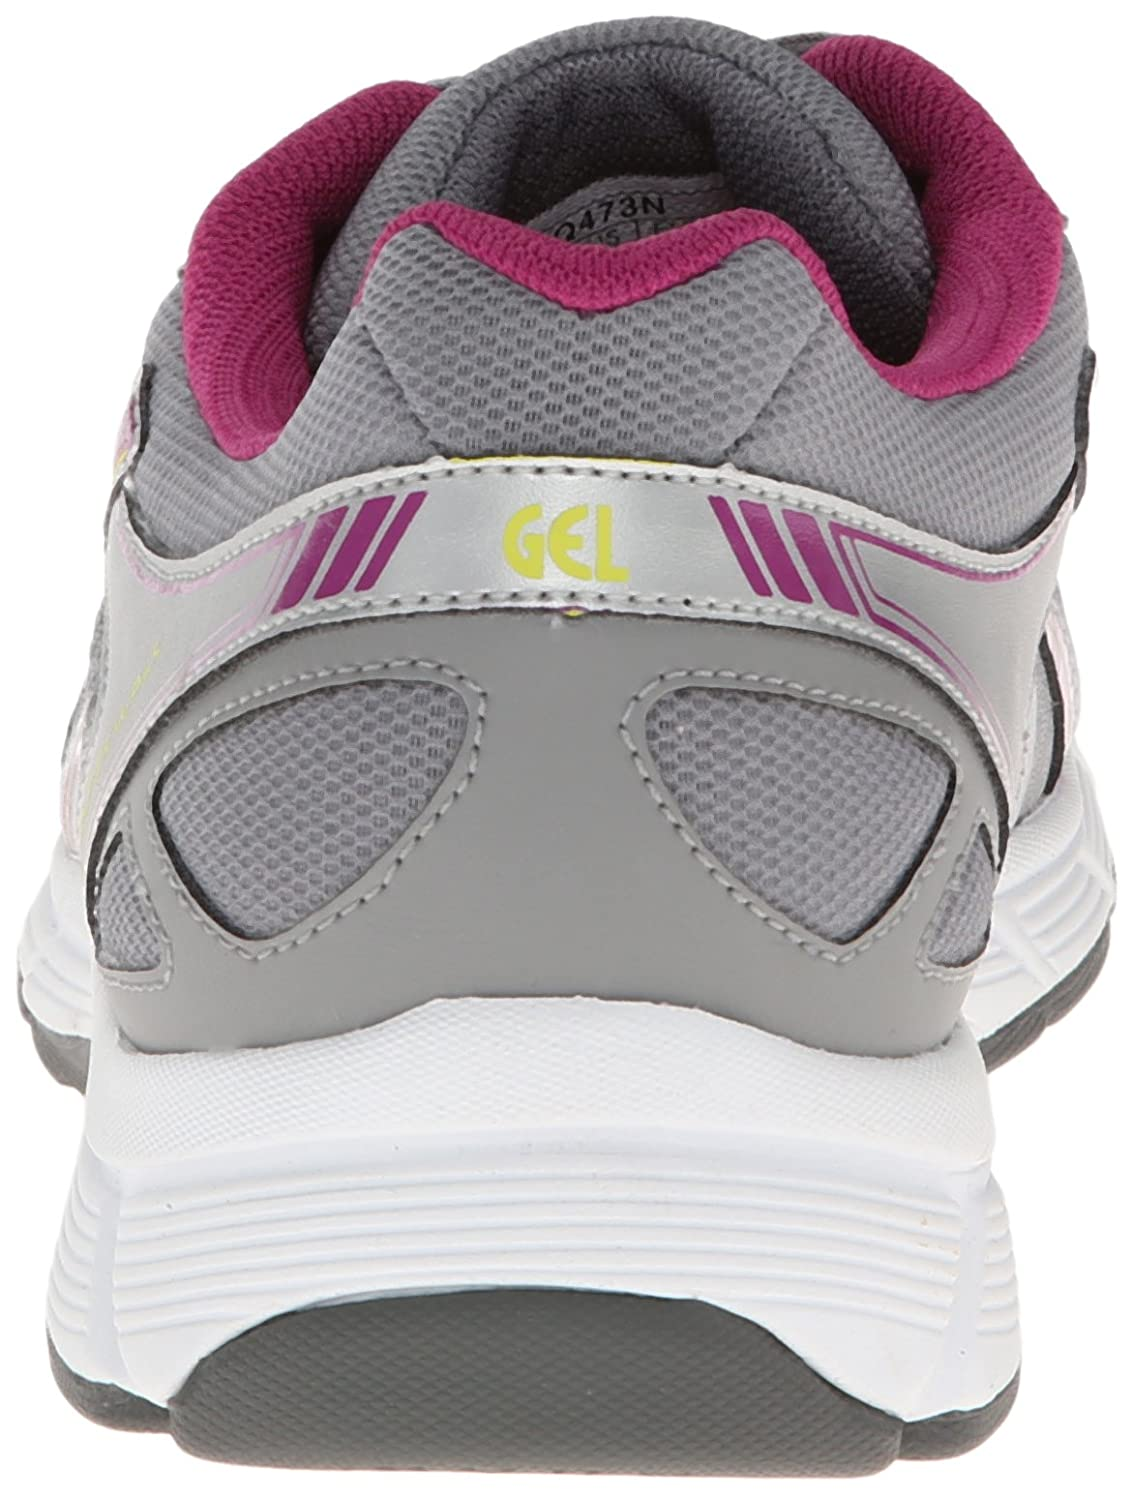 Asics Kvinners Walking Sko Amazon 6aZoFMvT